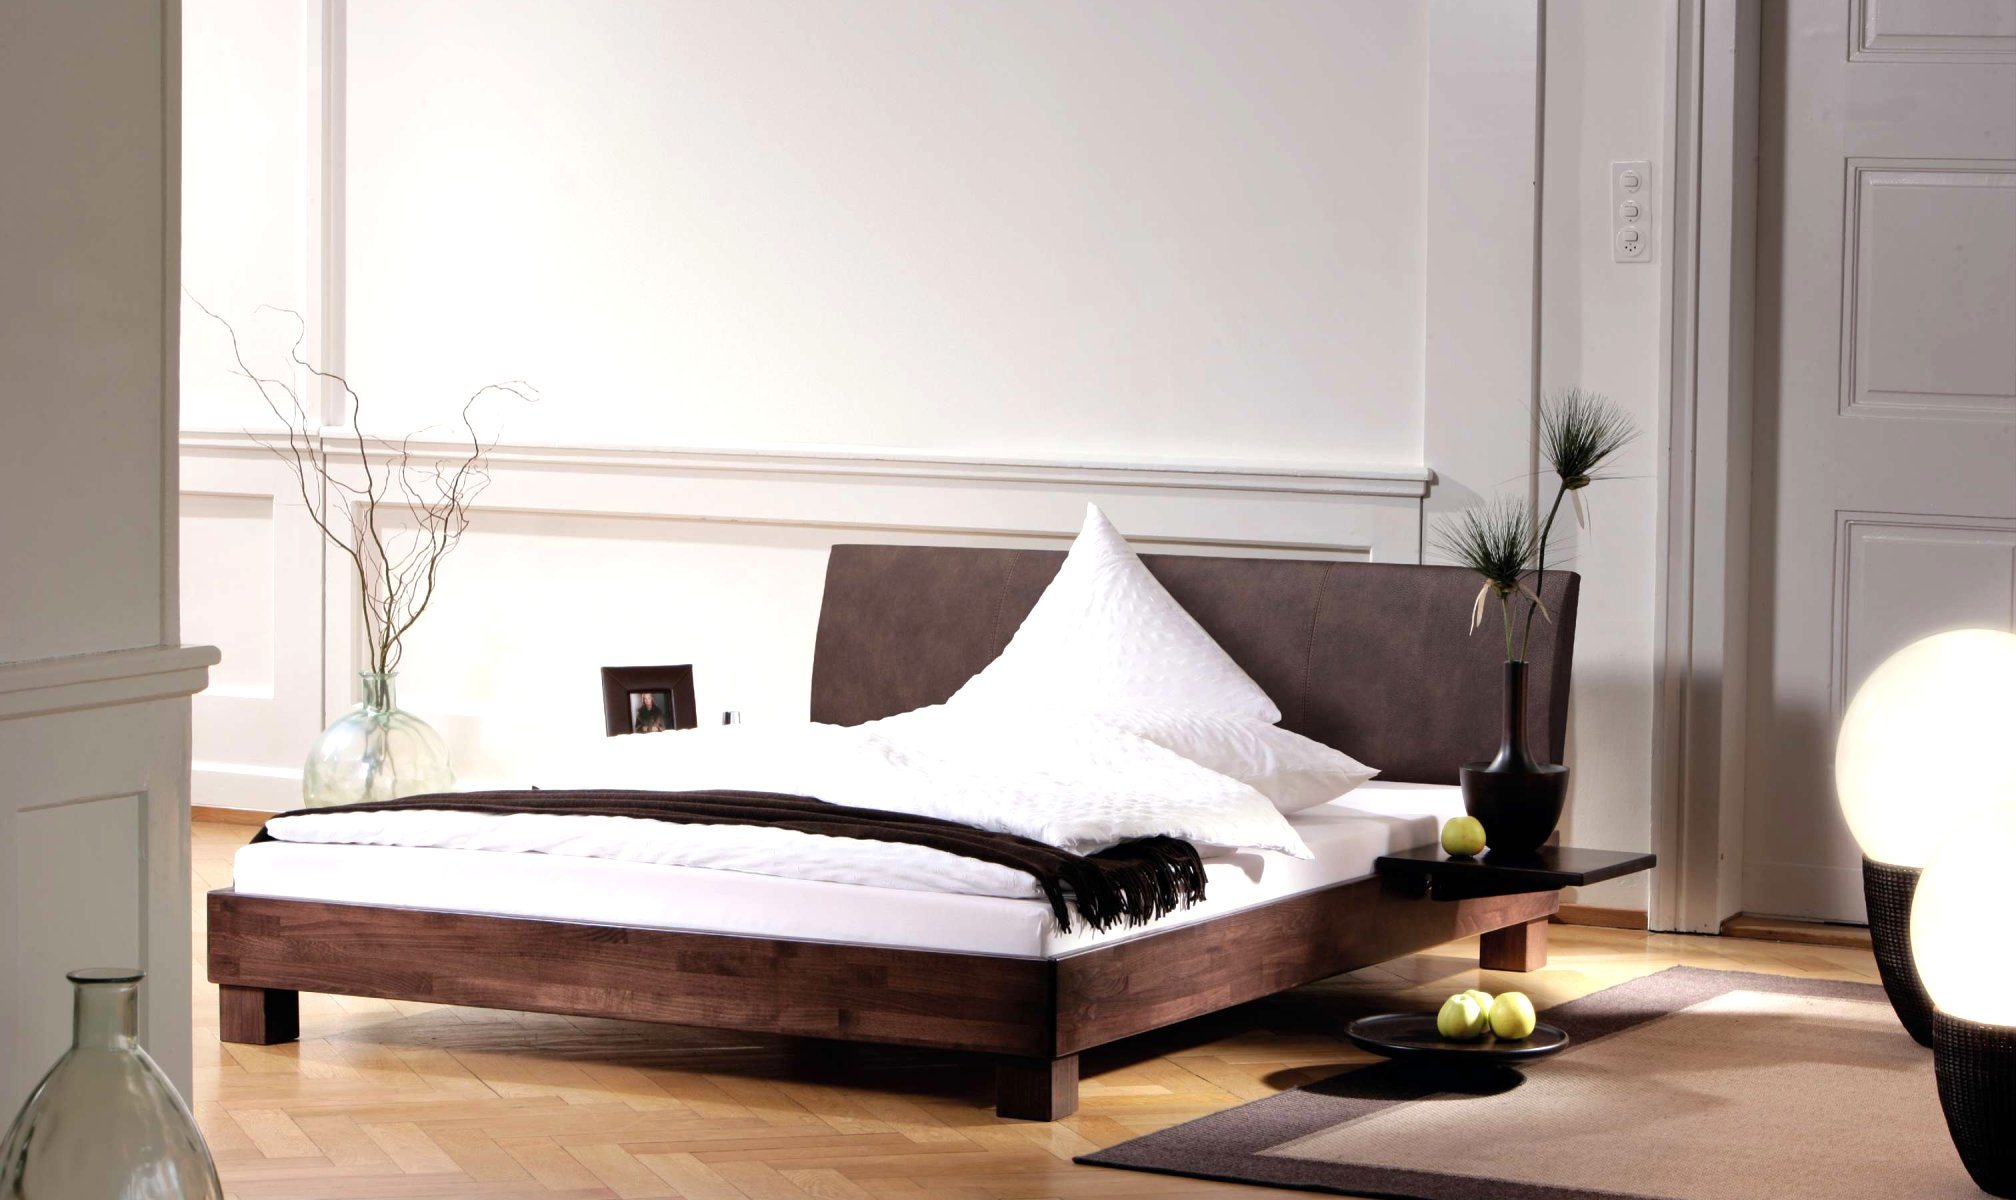 wasserbetten z rich reparatur umbau gelbett. Black Bedroom Furniture Sets. Home Design Ideas